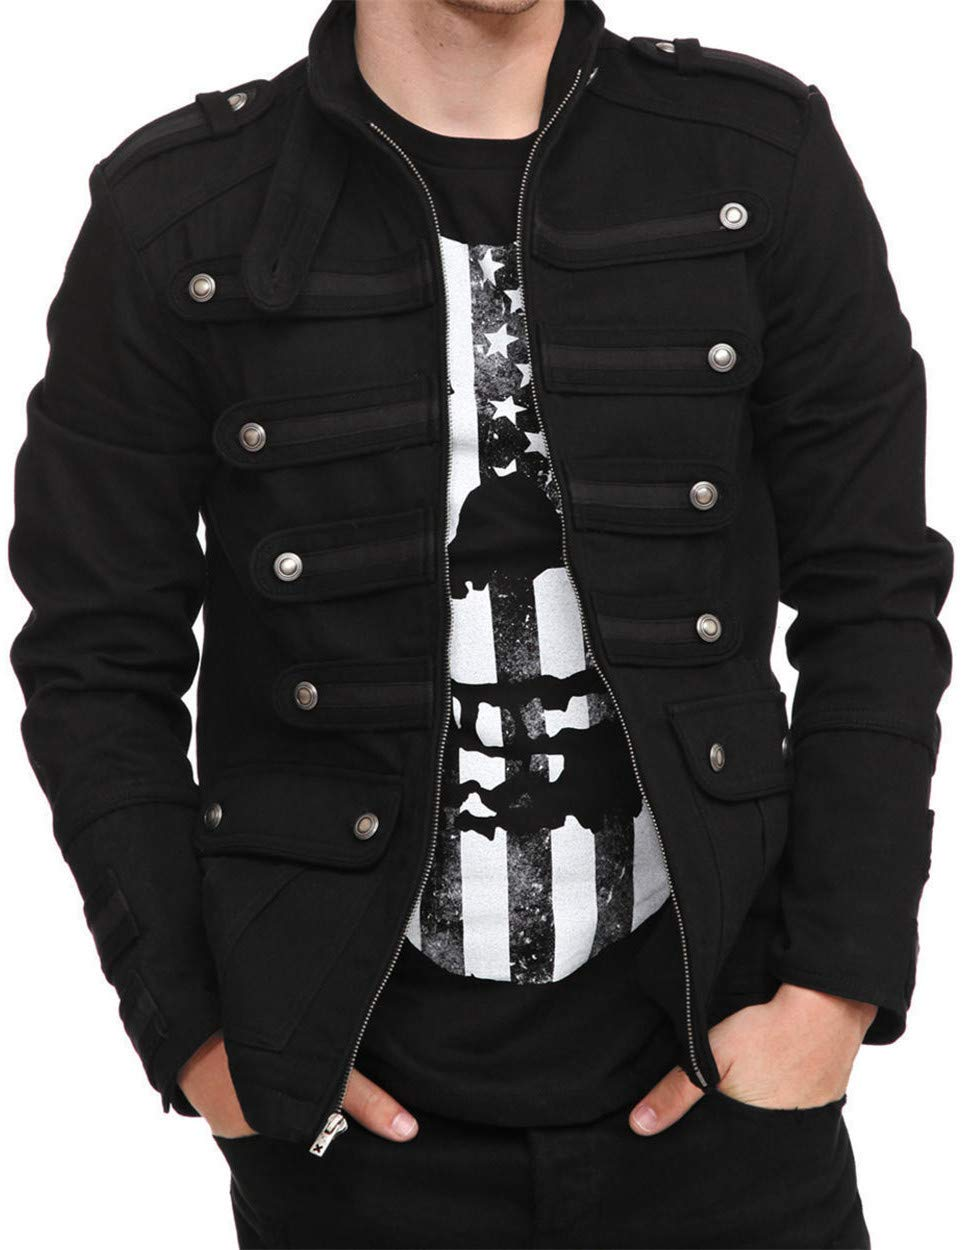 Karlywindow Mens Gothic Military Jackets Casual Band Steampunk Vintage Stylish Jacket with pockets 4